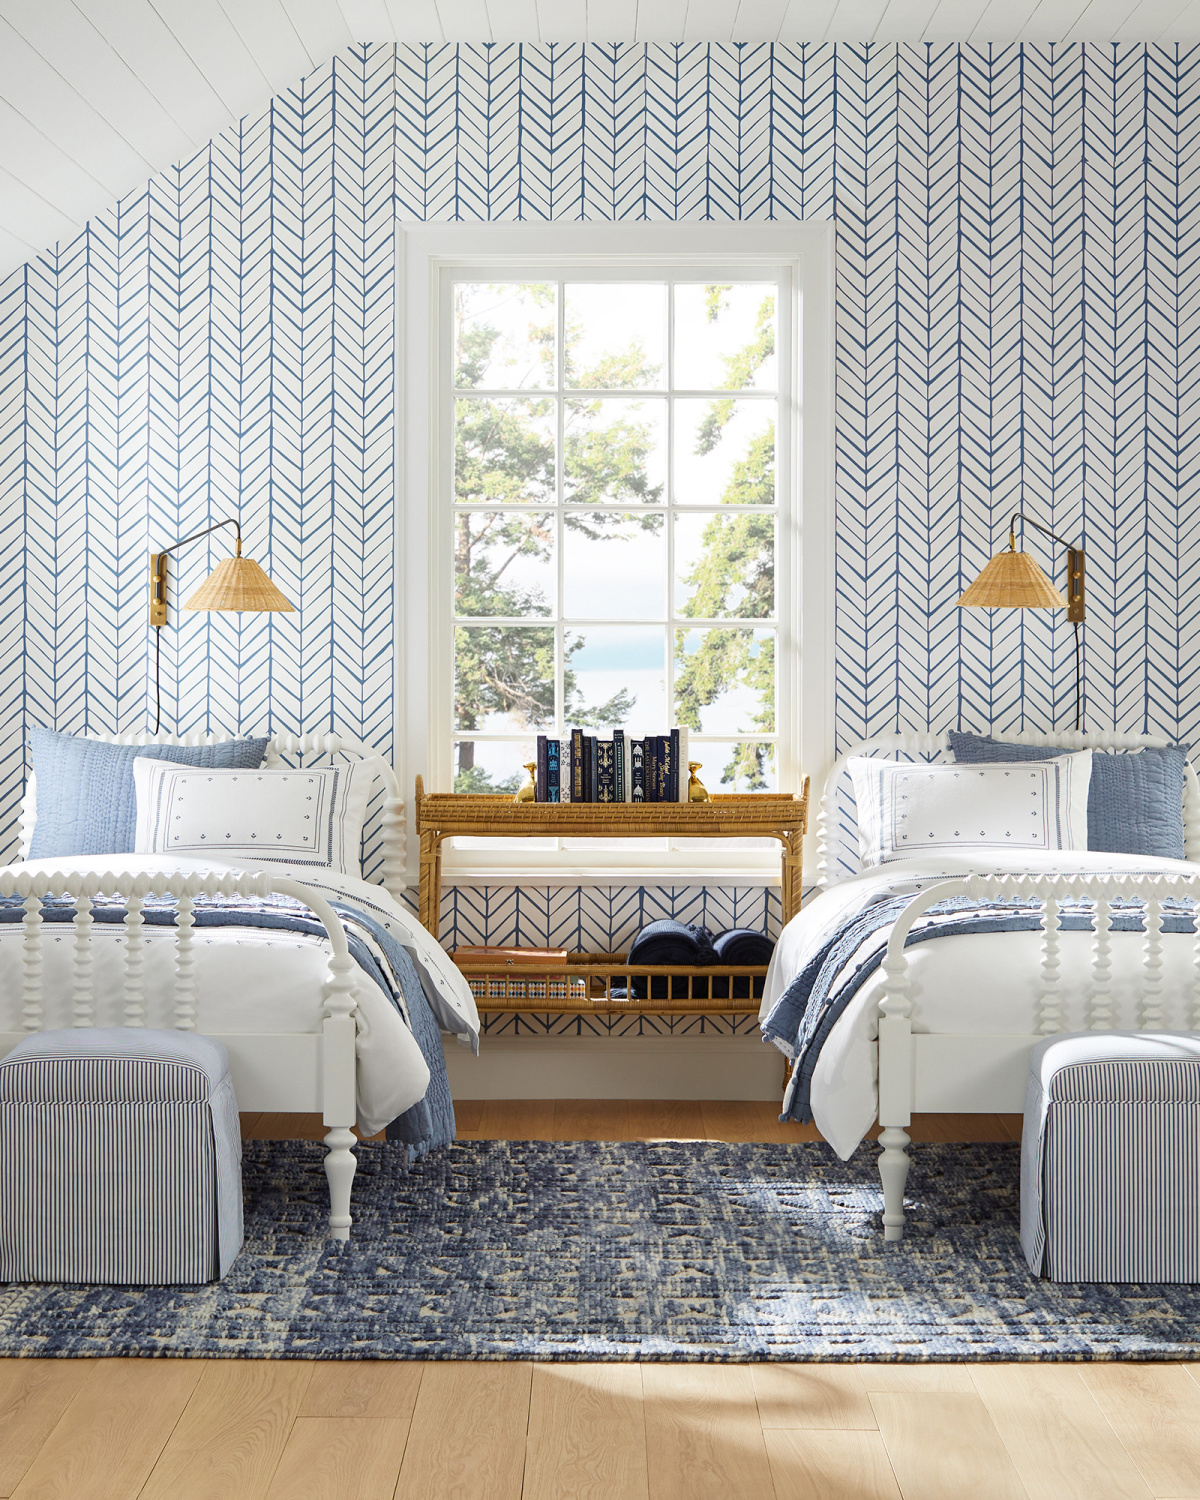 Beautiful blue and white coastal bedroom with twin beds, wallpaper, and freshened traditional style - Serena & Lily.